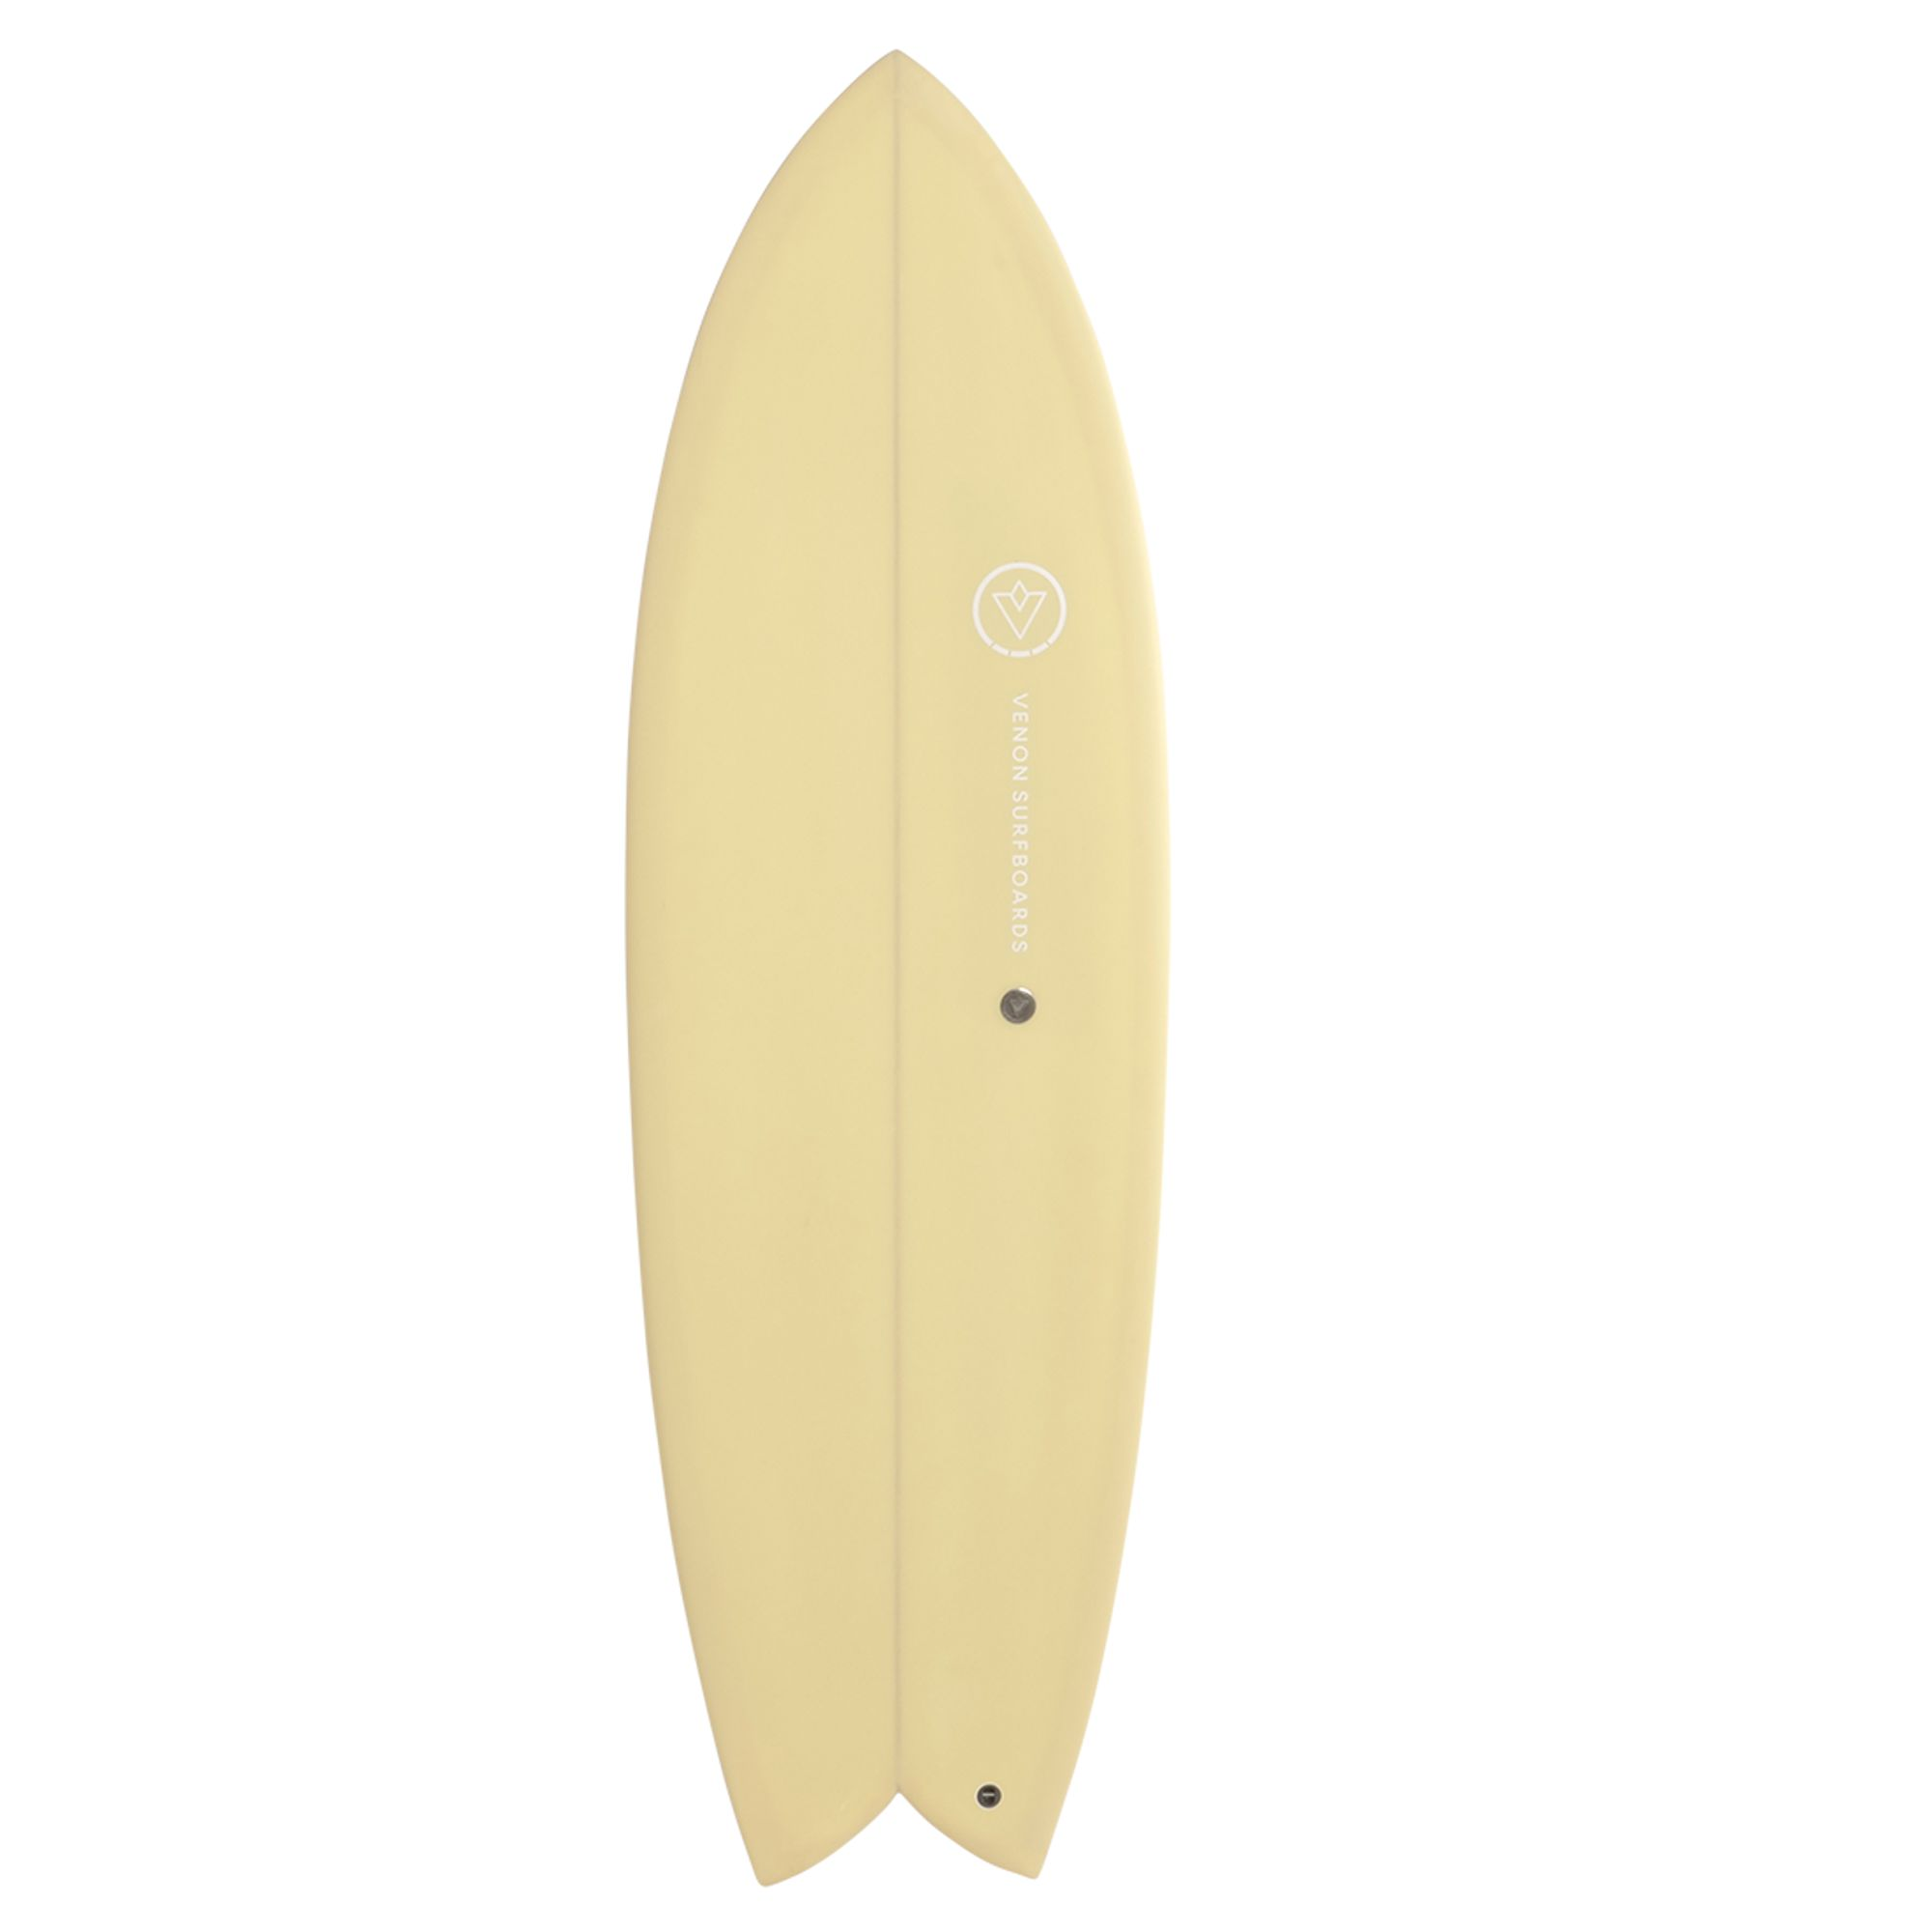 Surfboard VENON Node 5.11 Twinfin Retro Fish paste